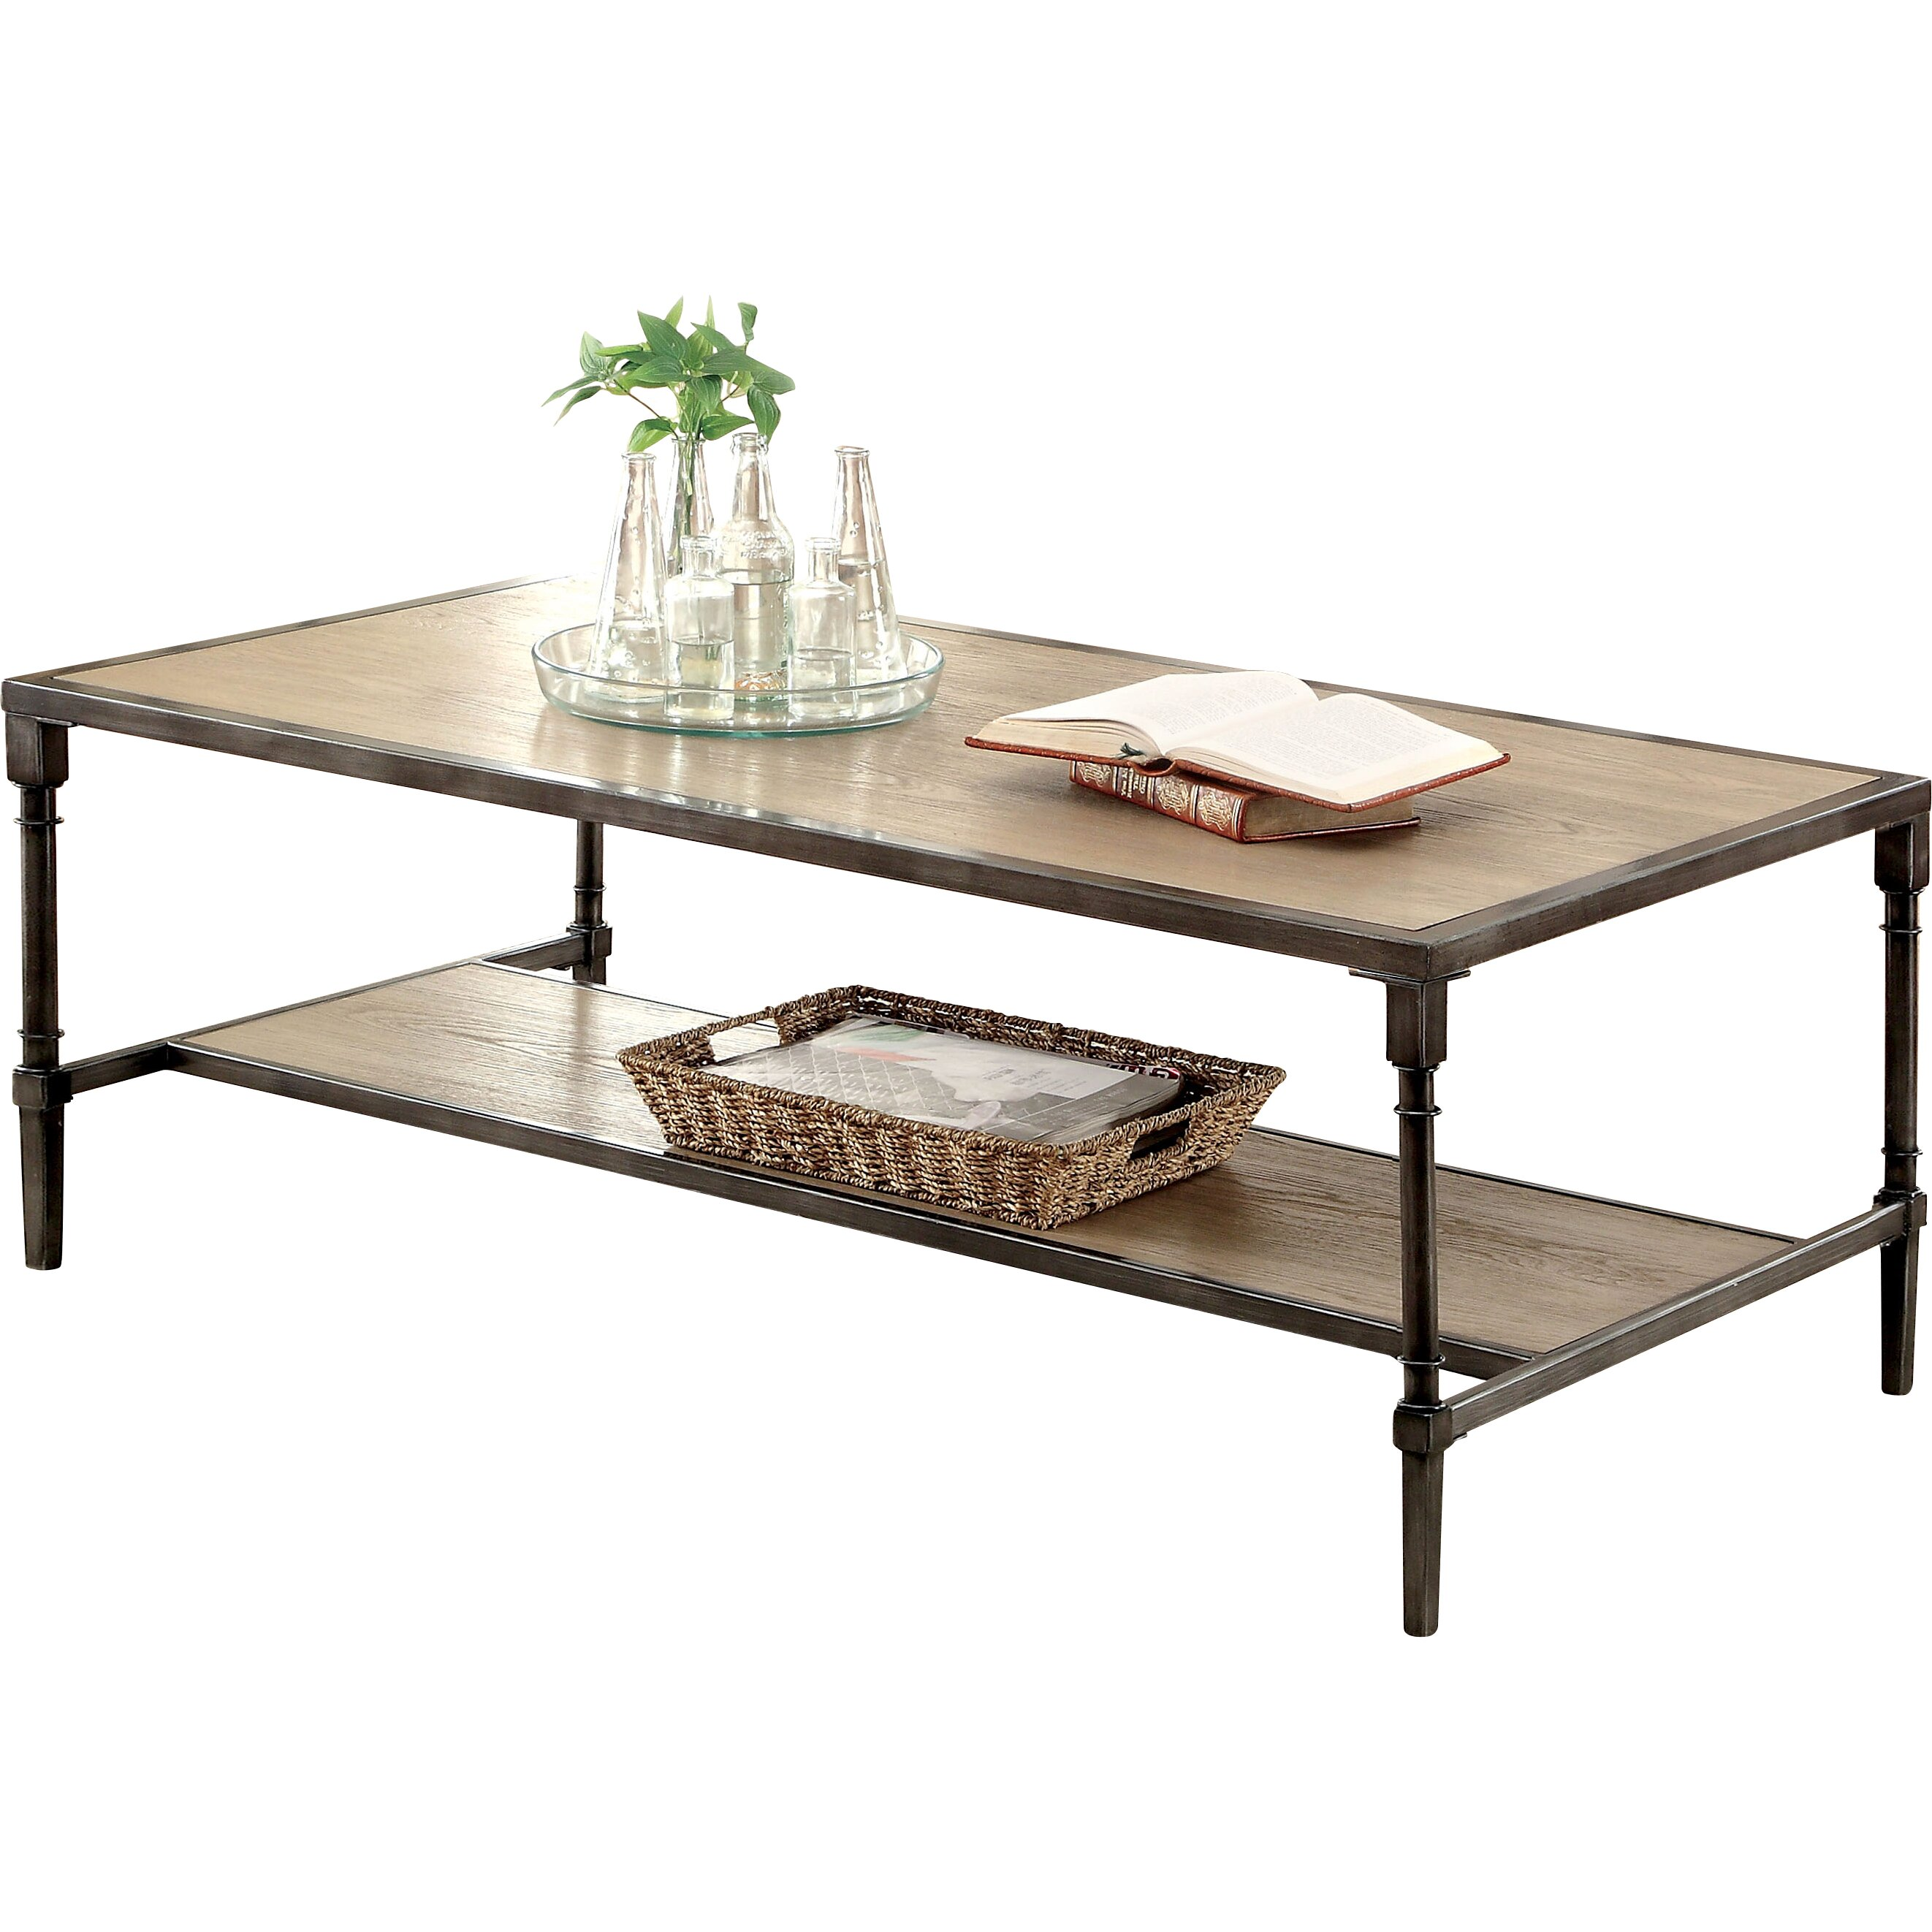 Modern Farmhouse Coffee Table: Laurel Foundry Modern Farmhouse Forrest Coffee Table